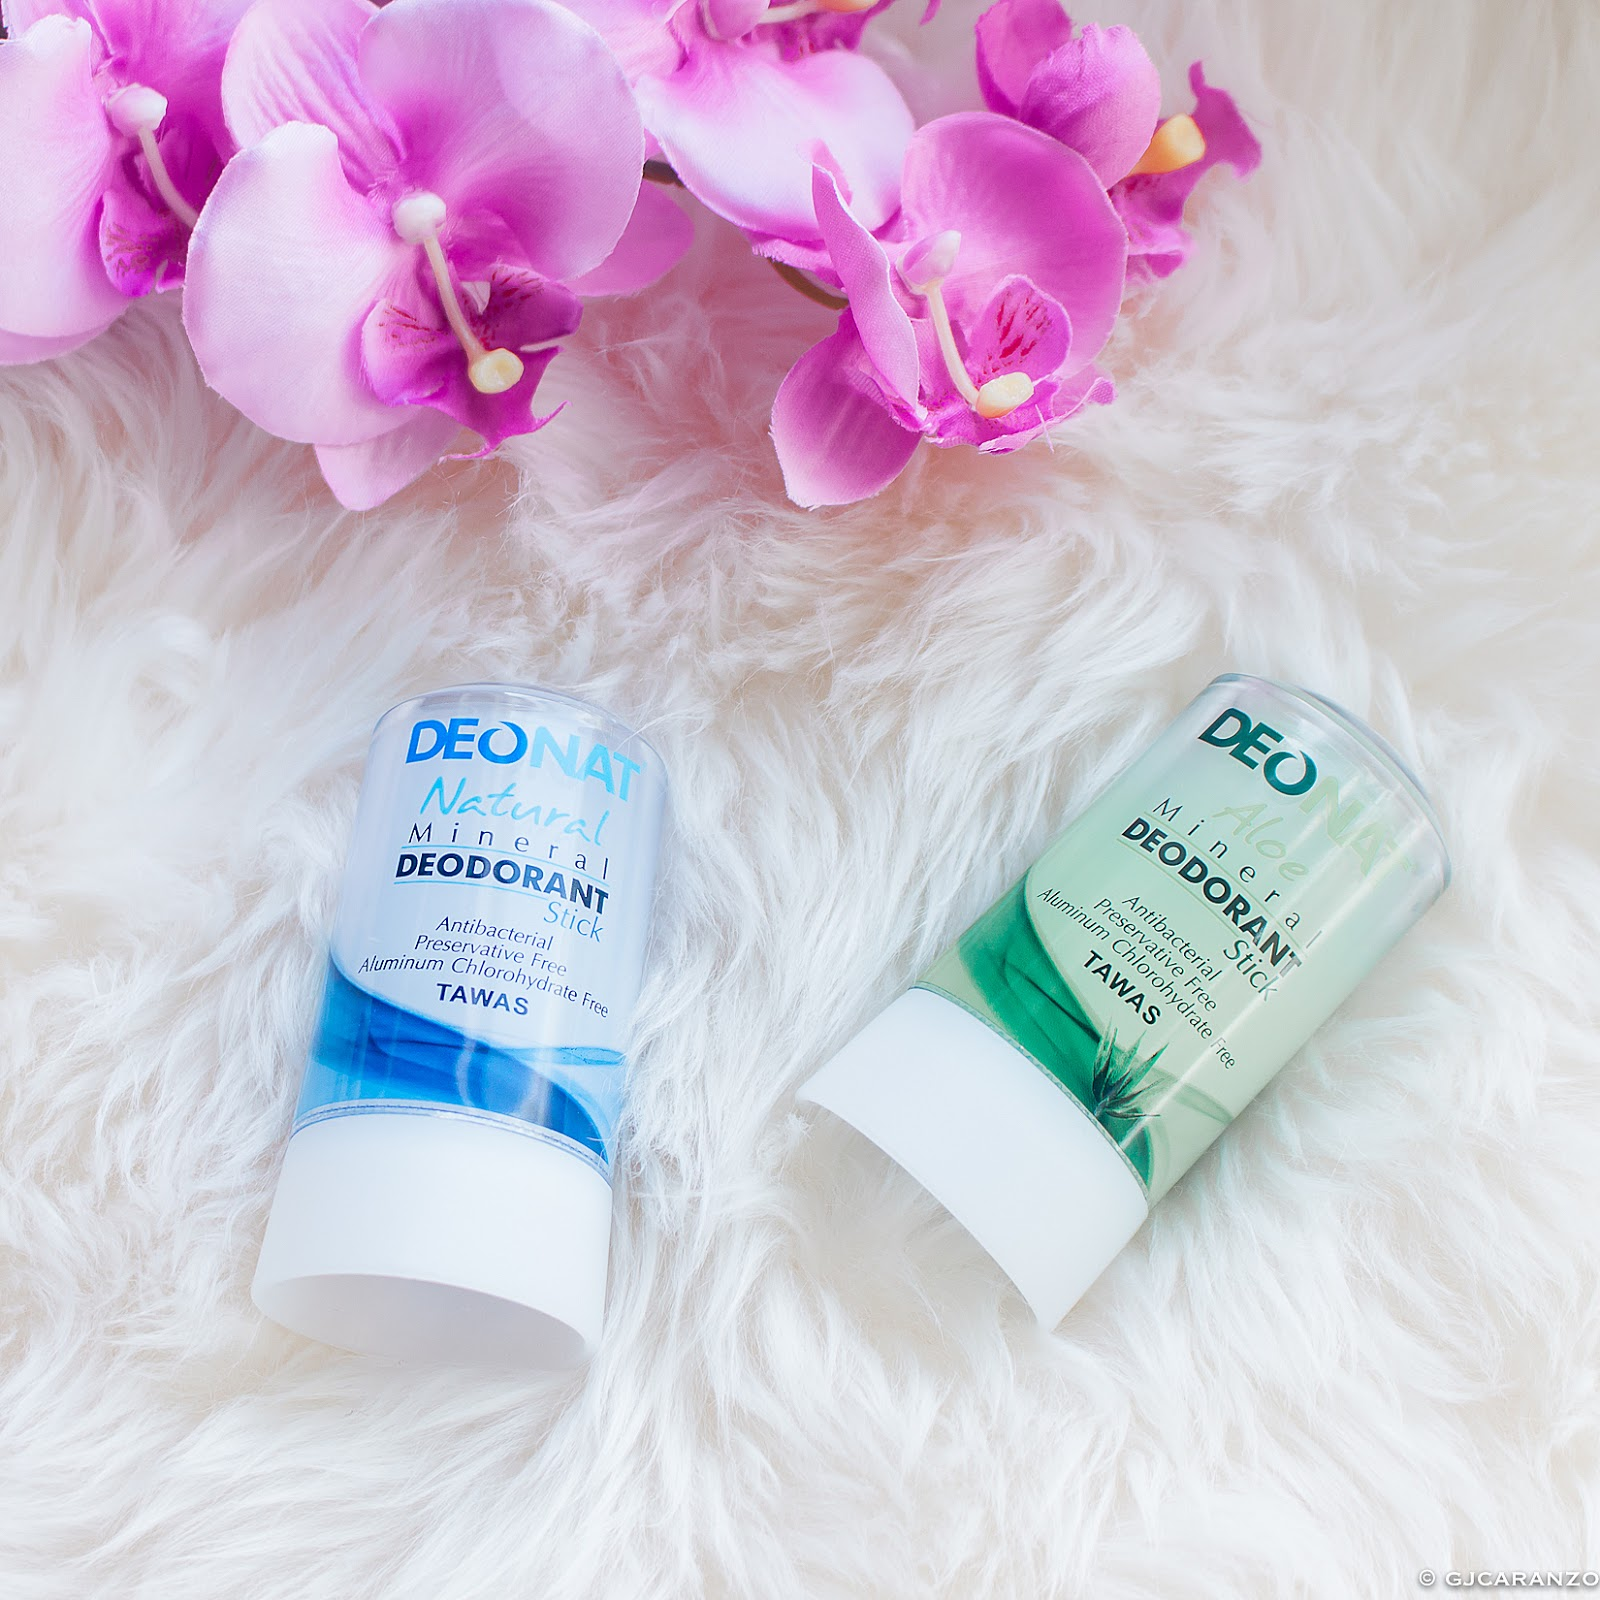 Deonat Mineral Deodorant Stick Product Review